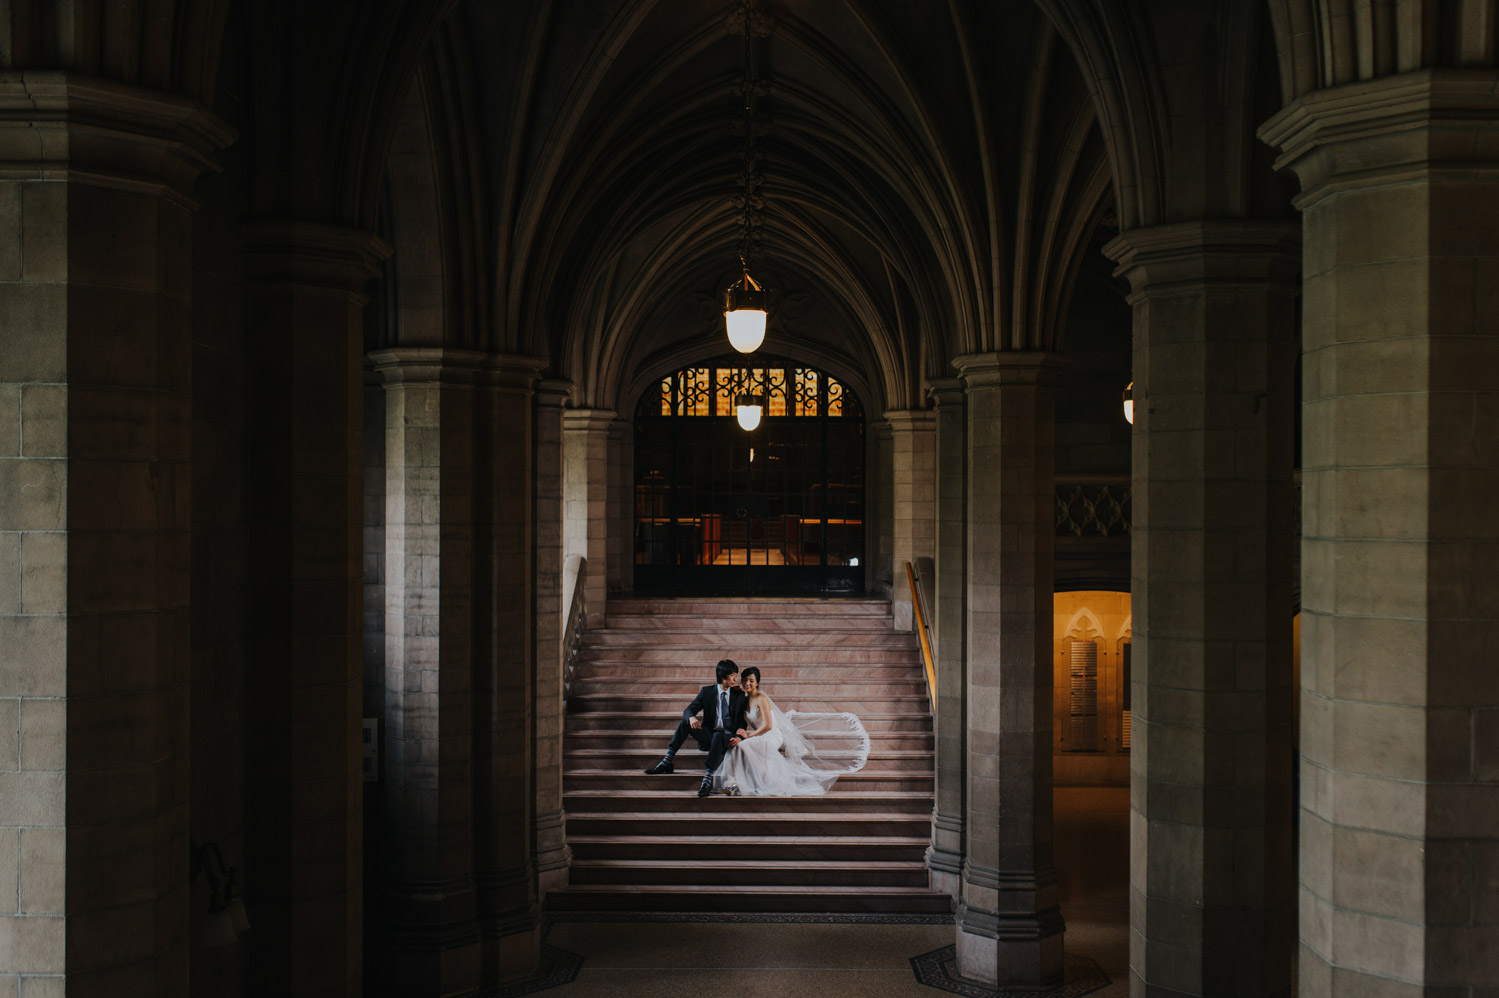 Wedding Photos at Knox College, University of Toronto